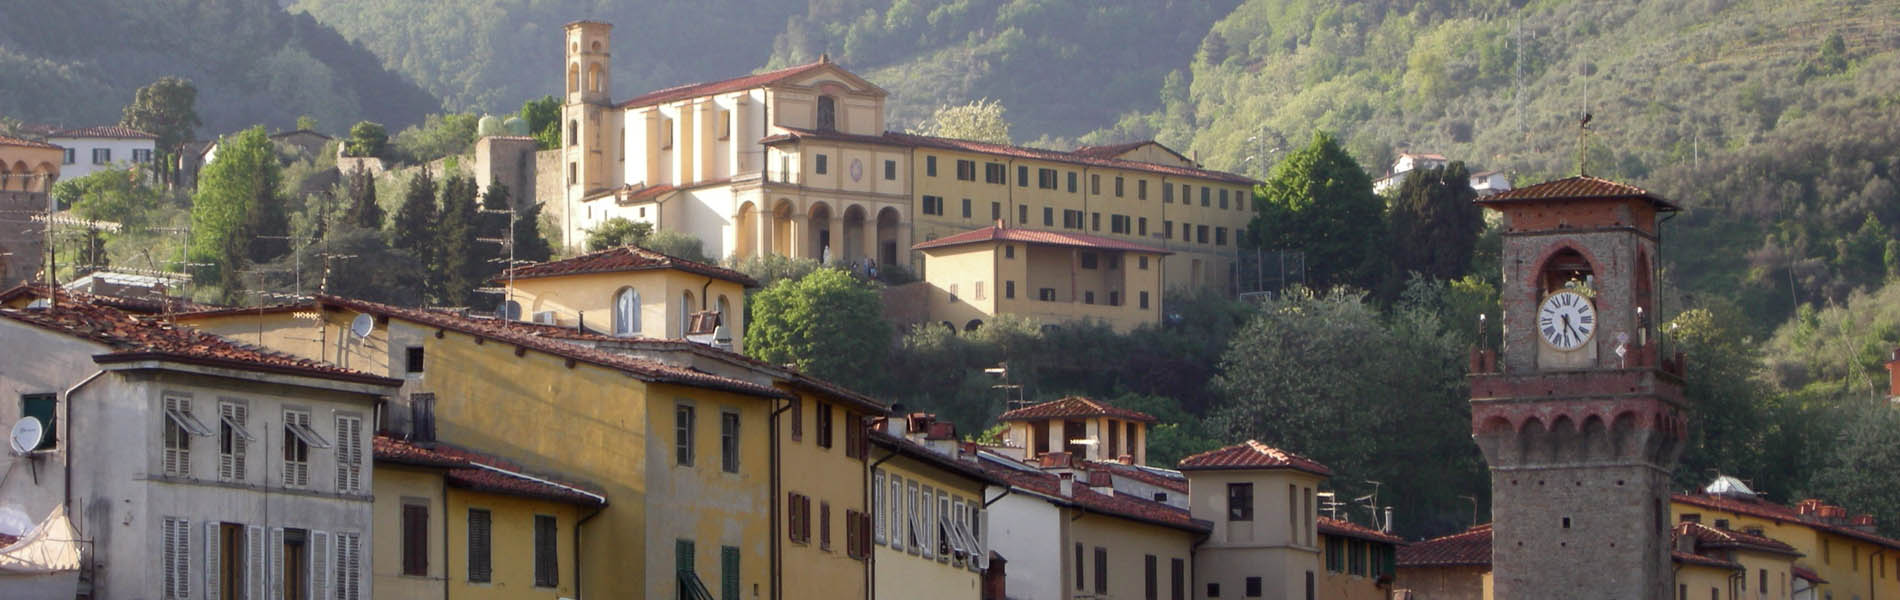 http://www.iltuopaese.com/wp-content/themes/Directory/images/pescia-2.jpg